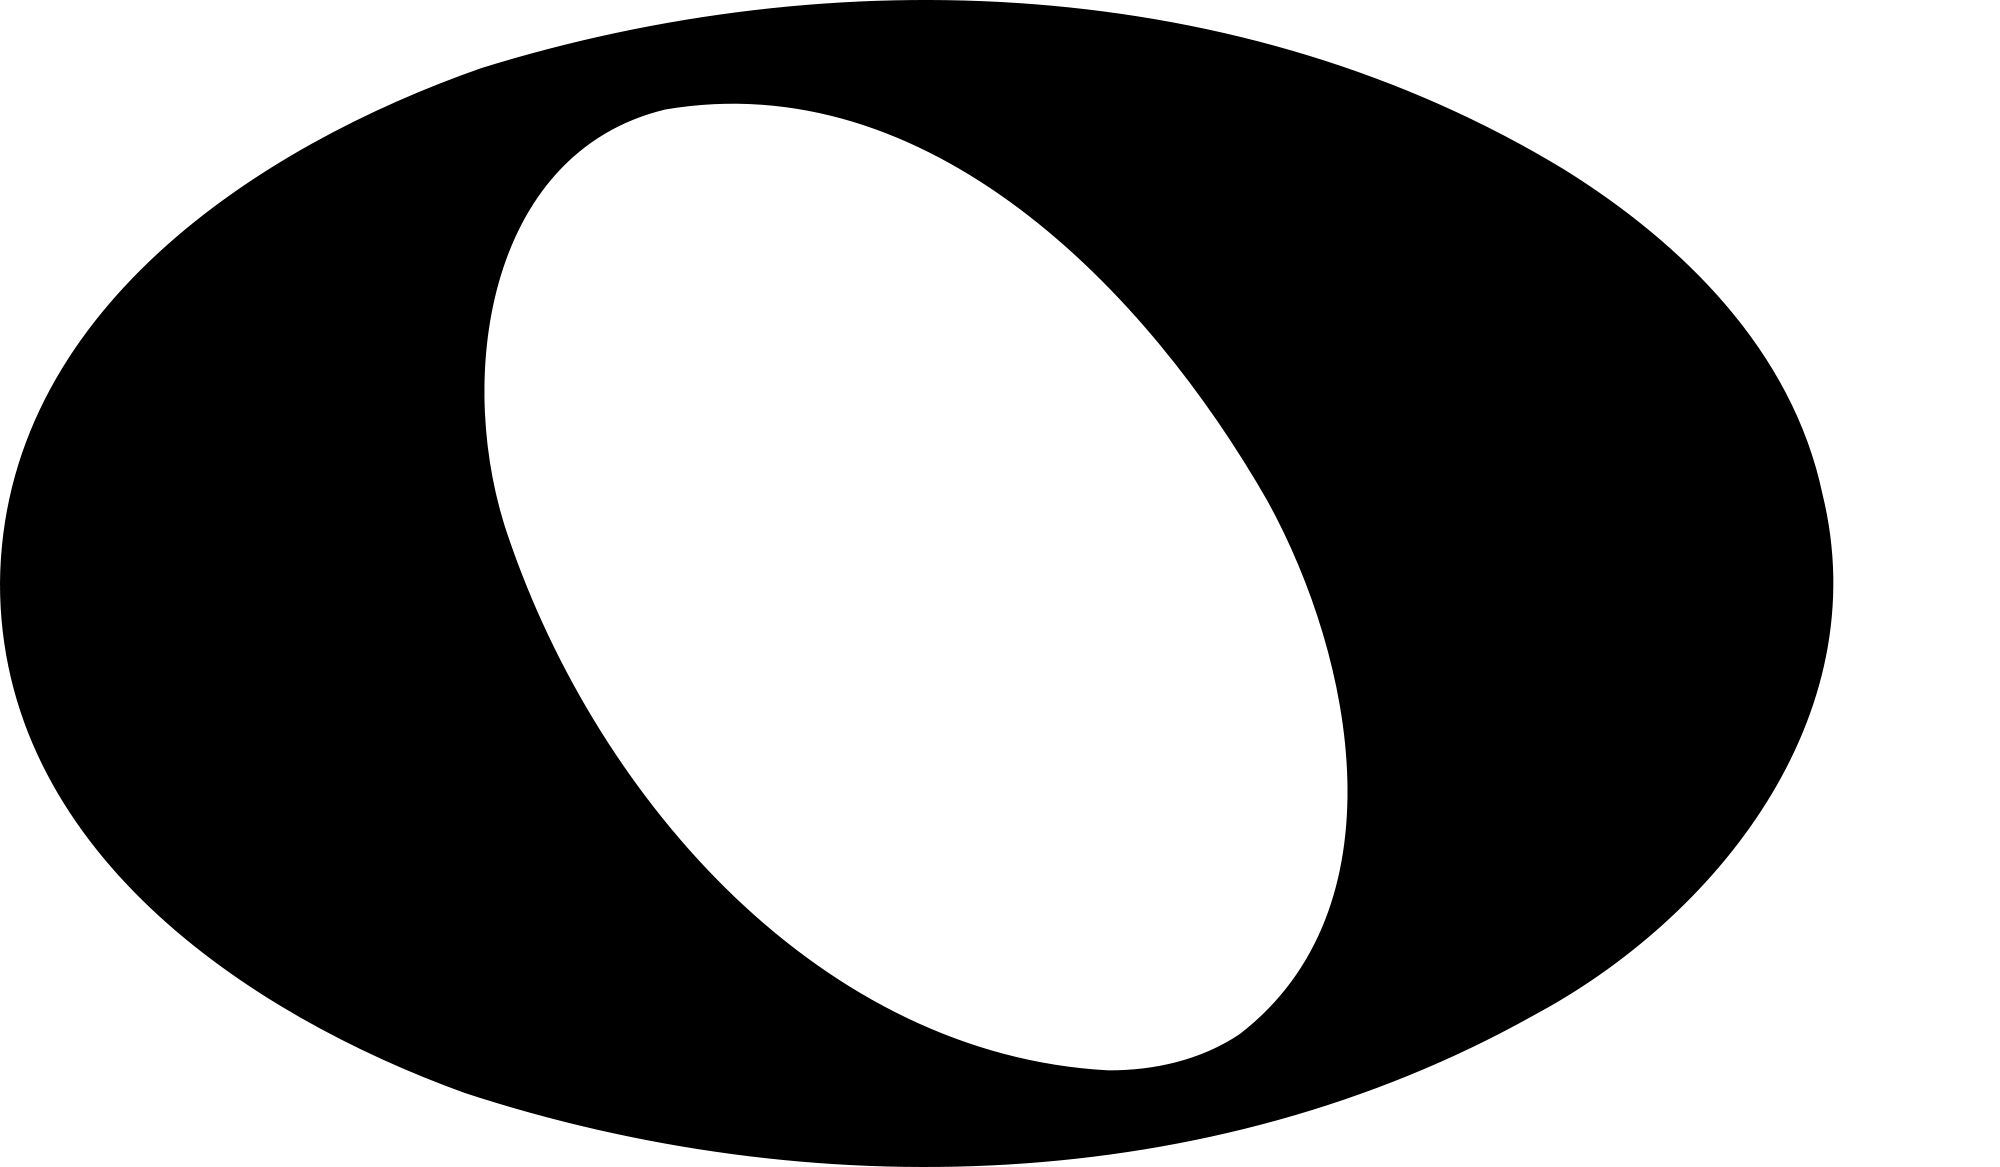 Whole note png. File wholenote svg wikimedia